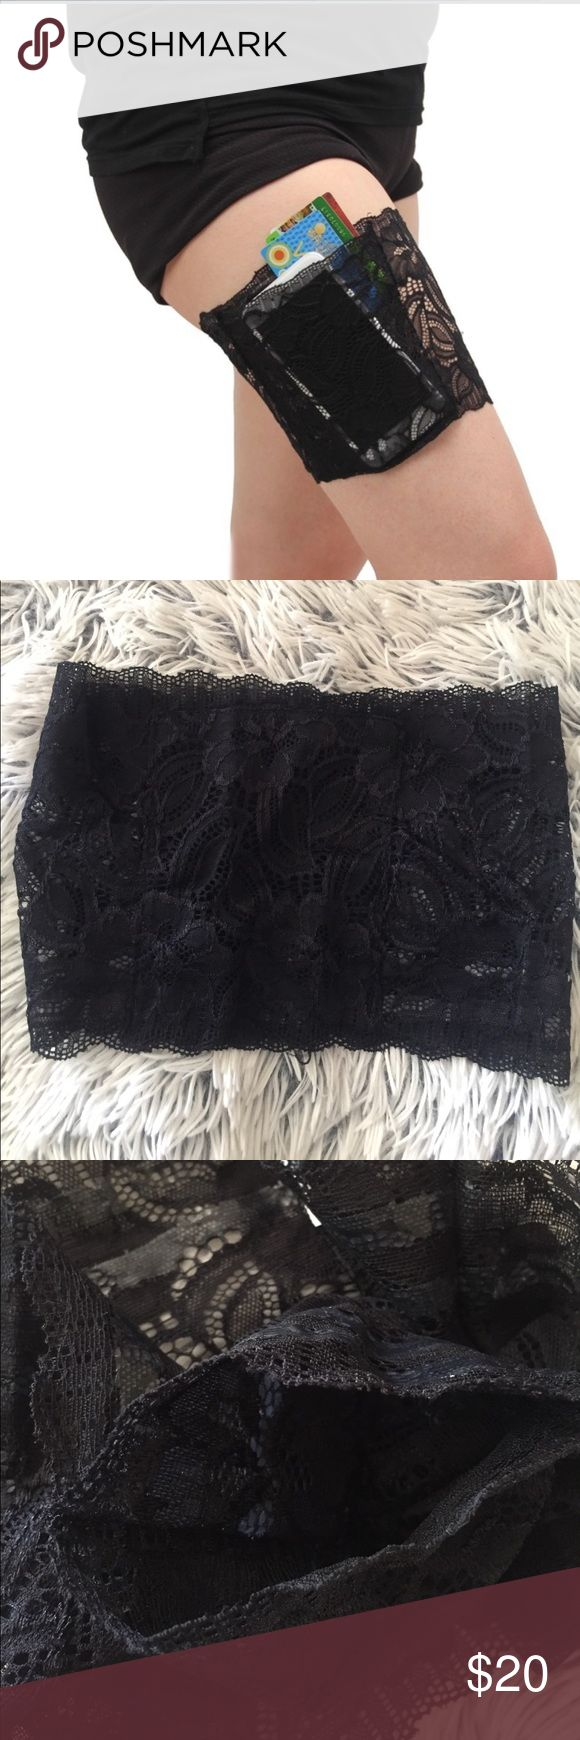 🎀Sale! 🎀 Sexy lace thigh band pocket! This band is perfect for when you want to go handsfree! Has 1 pocket that is about 5.5 inches deep and 4.5 inches wide! Is very comfortable to wear and user friendly and does not cause chafed skin. Has two rows of non-slip silicone! Hand wash only. Accessories